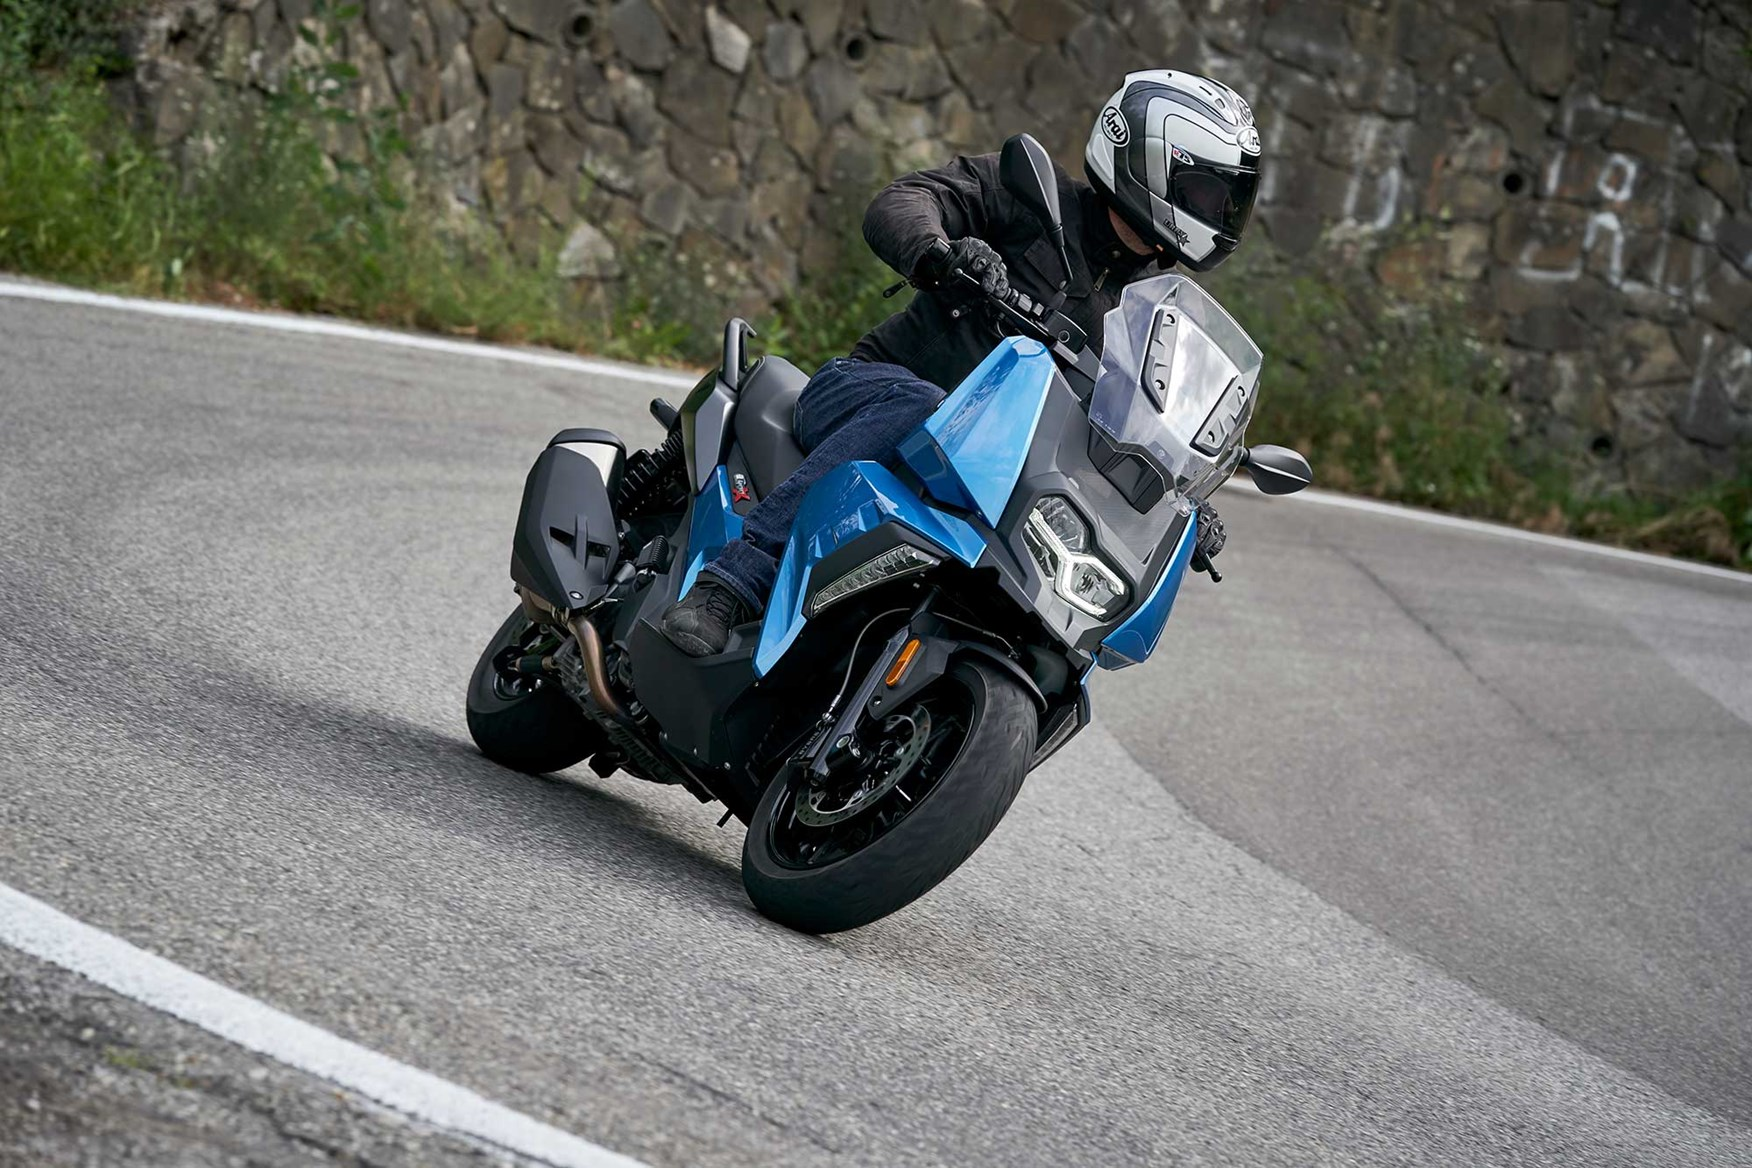 First Ride Bmw C400x Mid Size Madness Mcn R1200c Fuse Box Ridden By Contributor Jon Urry